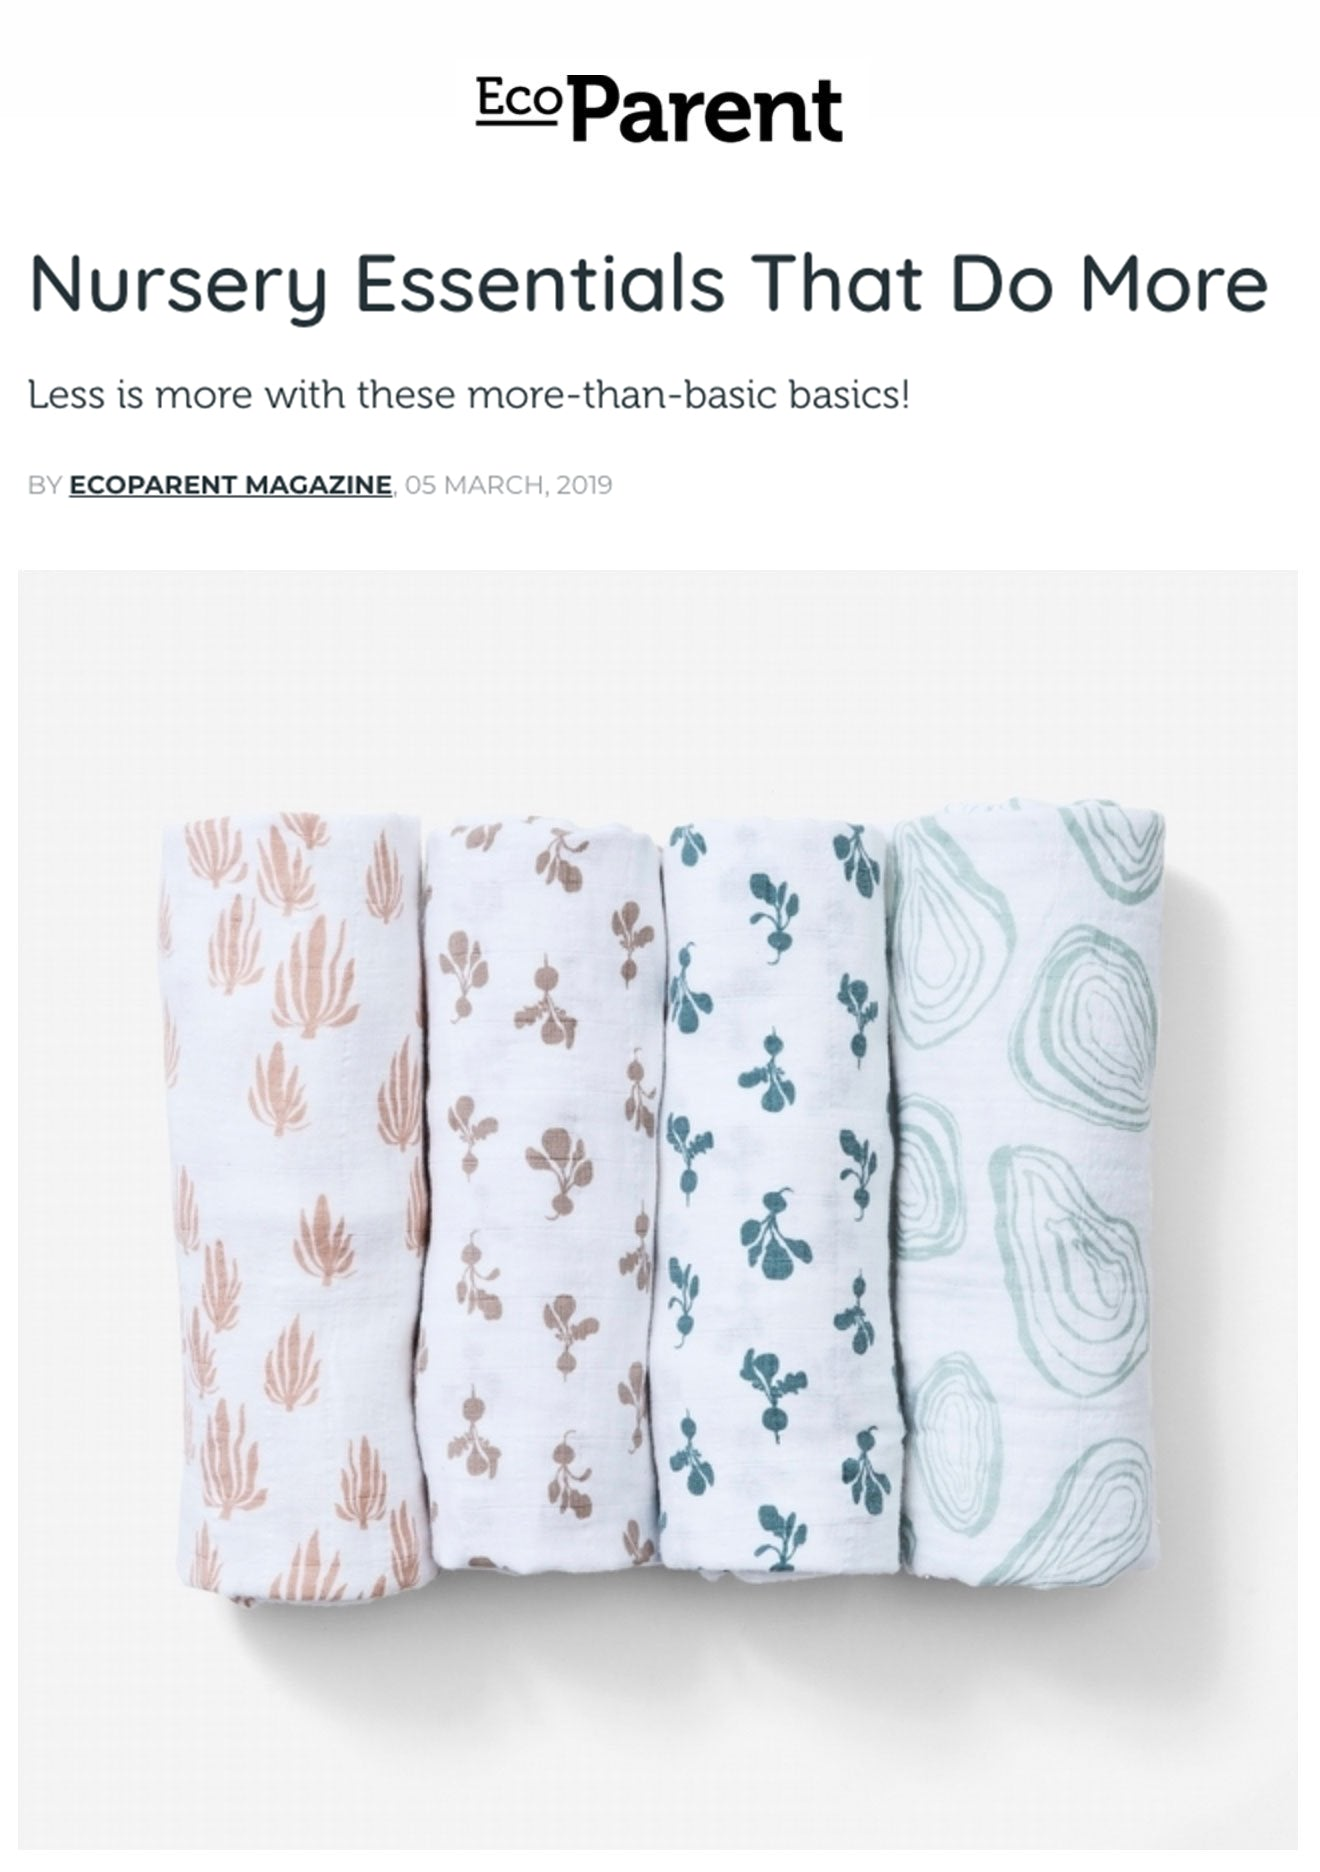 Parent magazine focused on organic baby products features Lewis swaddles as a must-have product for your all-natural nursery.